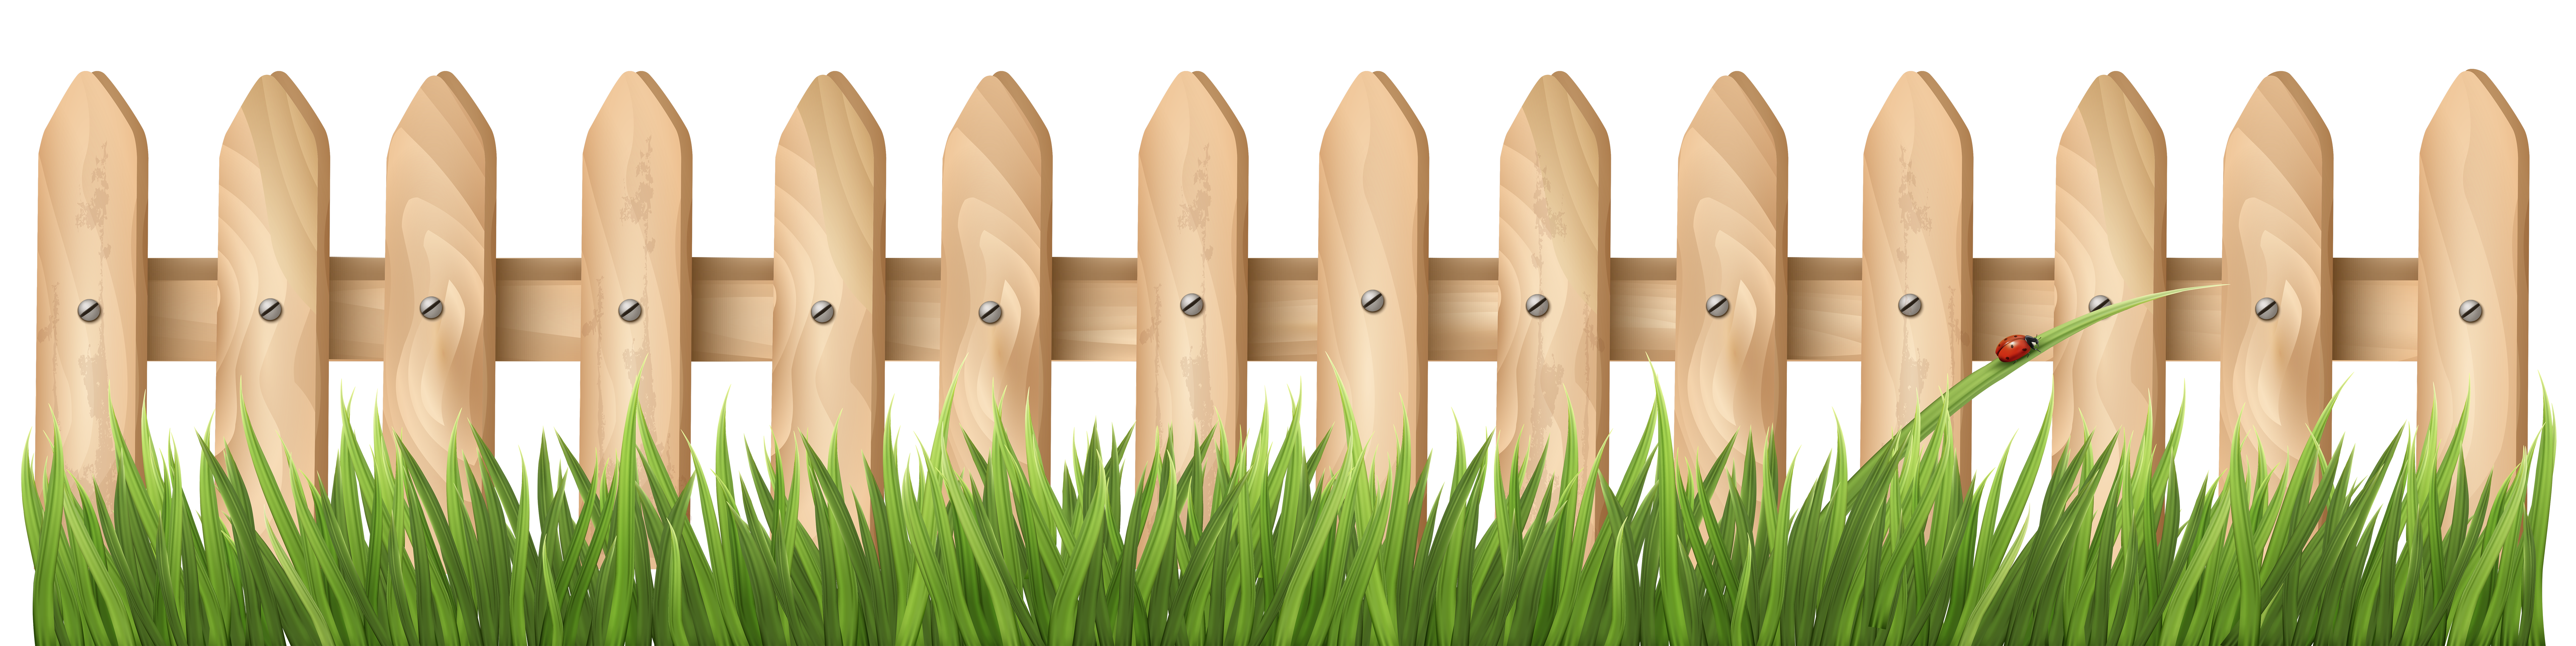 Fencing clipart old fence. Transparent with grass png